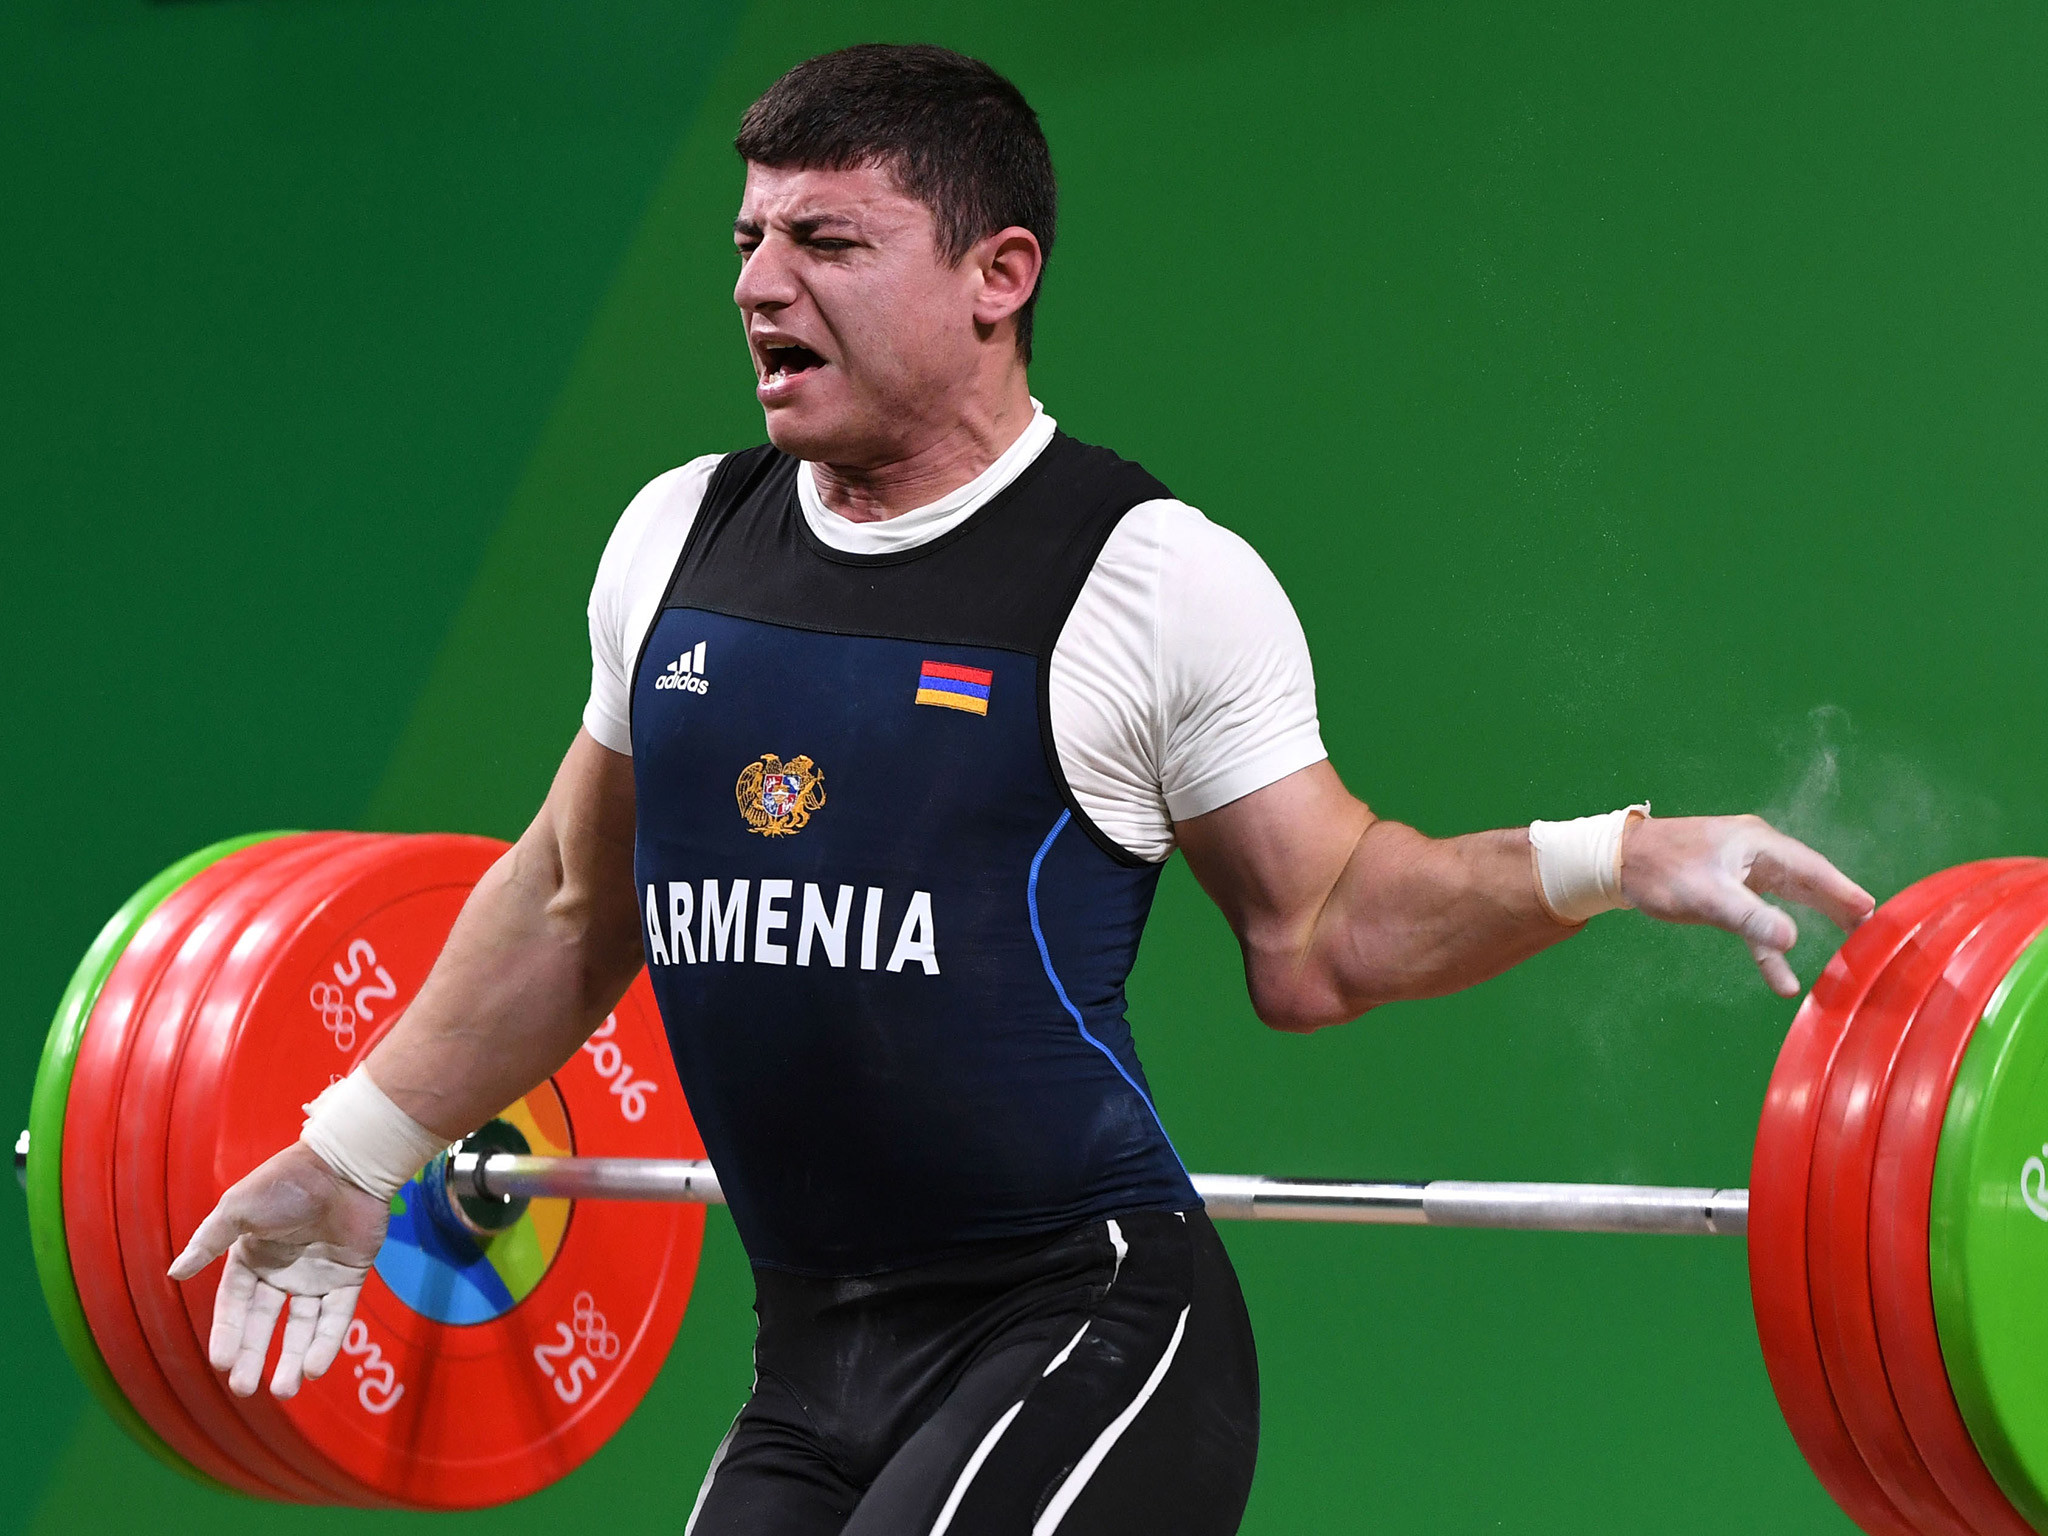 Rio 2016: Armenian weightlifter dislocates elbow during Olympic final | The  Independent